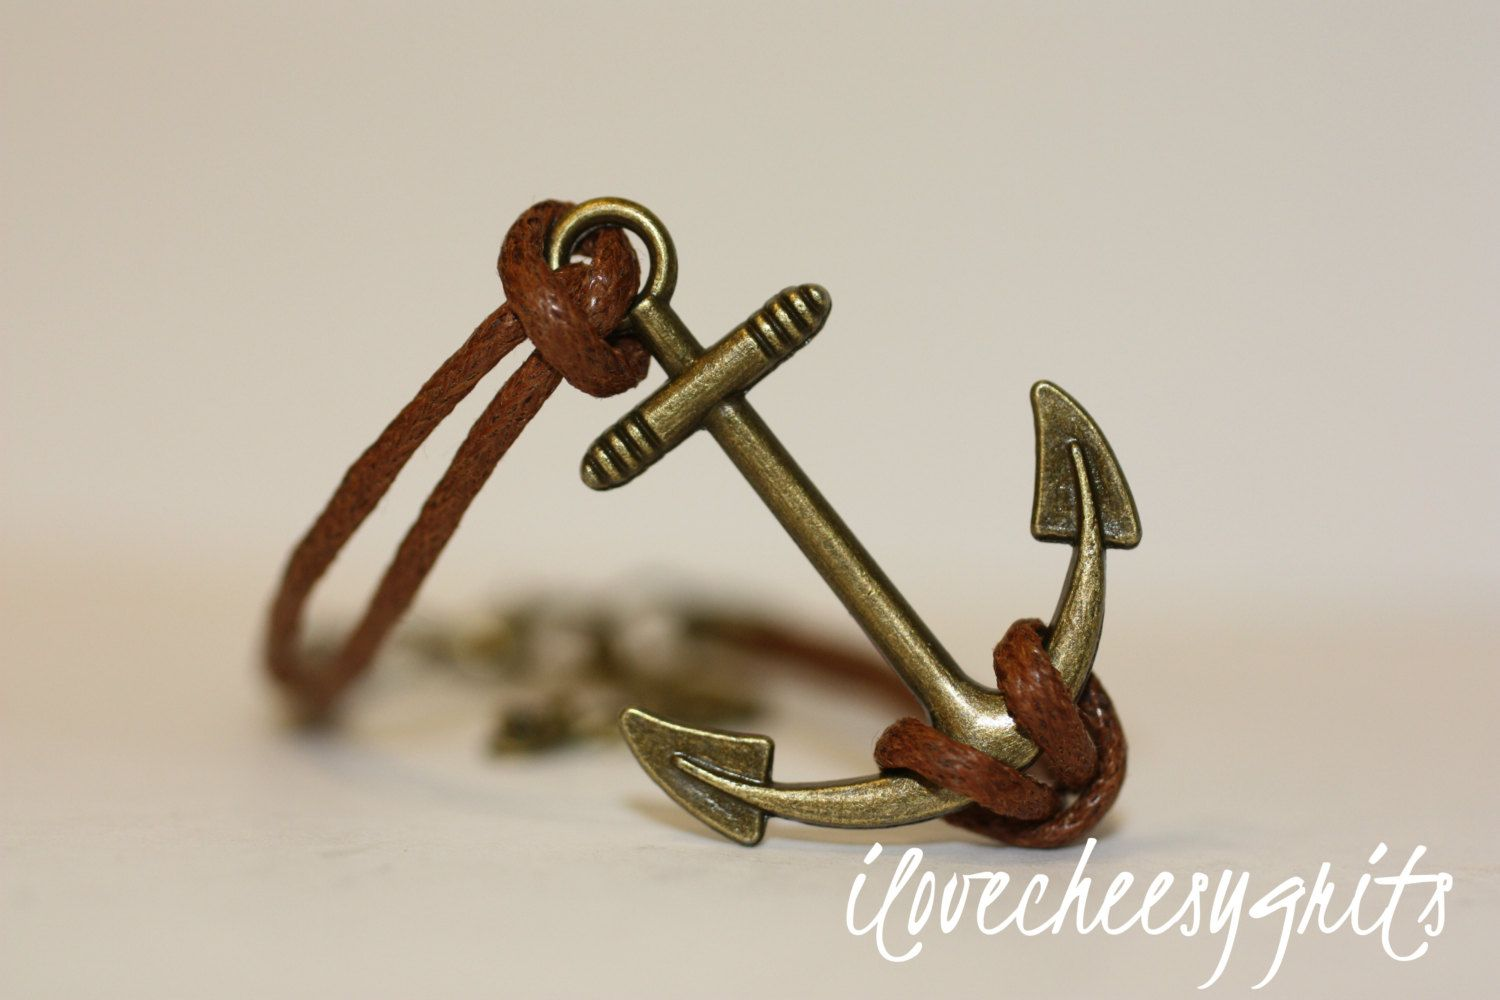 LONGING~ Handmade Bracelet Brown Leather Multilayer Bracelet Anchor Charm Bracelet Bridesmaid Gift Wedding Jewelry Nautical ilovecheesygrits by ilovecheesygrits on Etsy https://www.etsy.com/listing/239959457/longing-handmade-bracelet-brown-leather